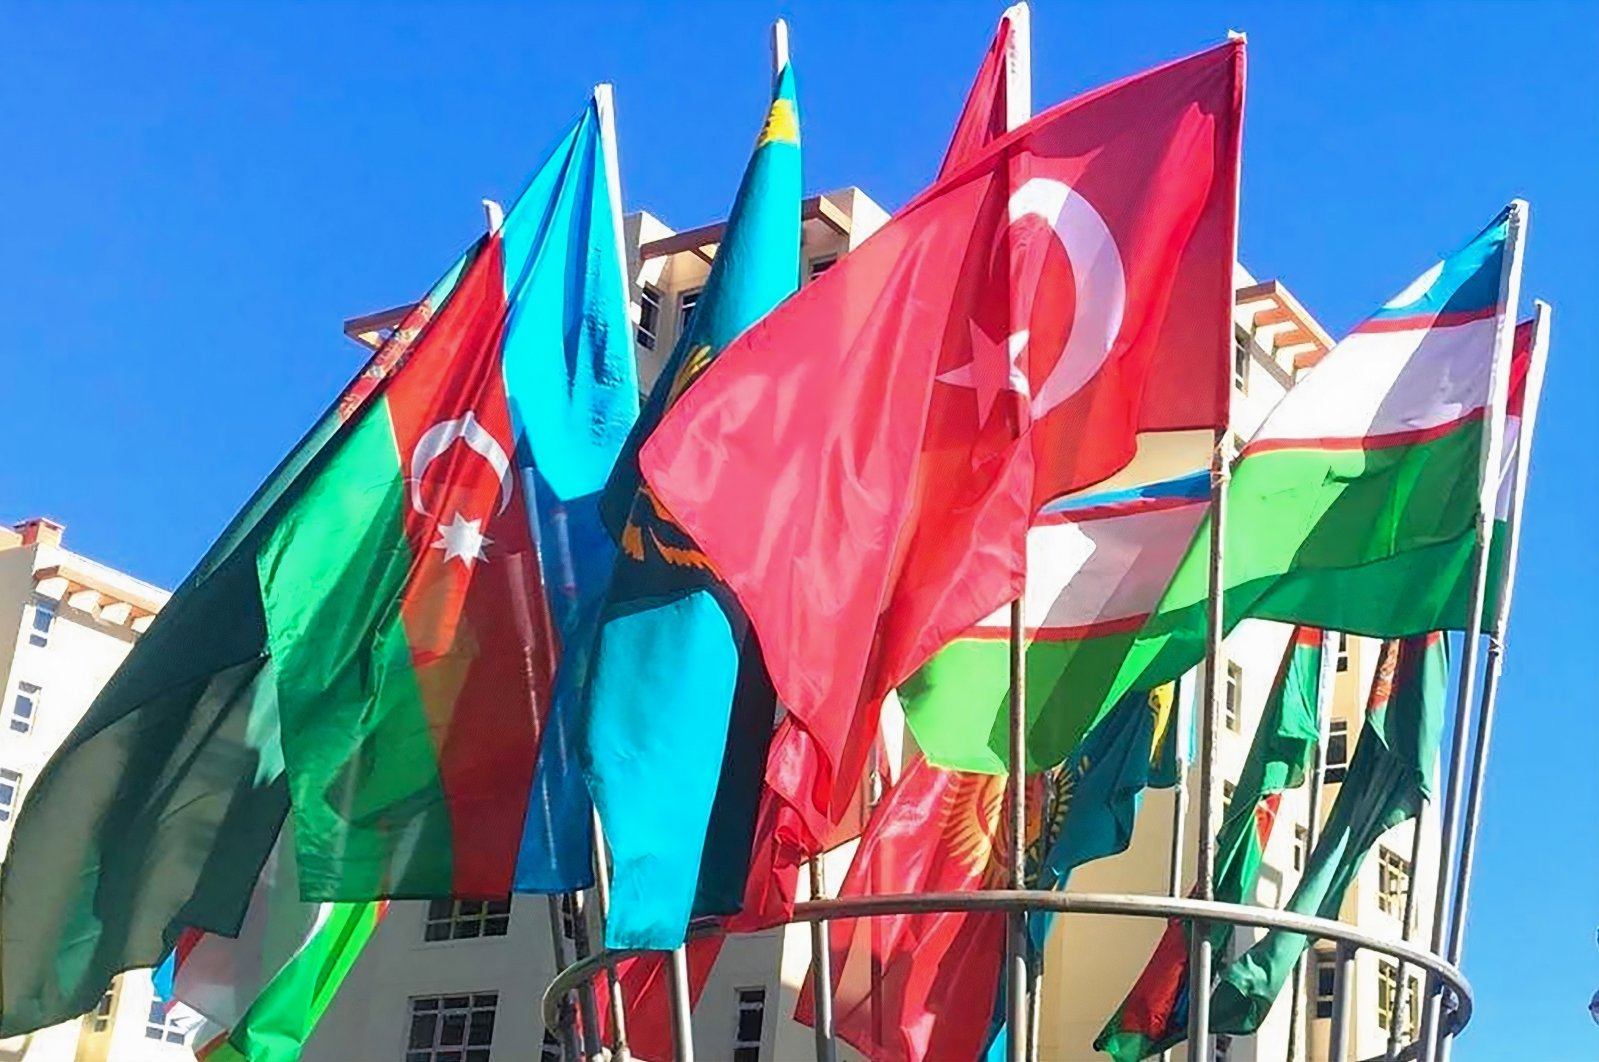 Flags of the countries participating in a Turkic Council meeting seen in Baku, Azerbaijan, Oct. 16, 2019. (Sabah File Photo)